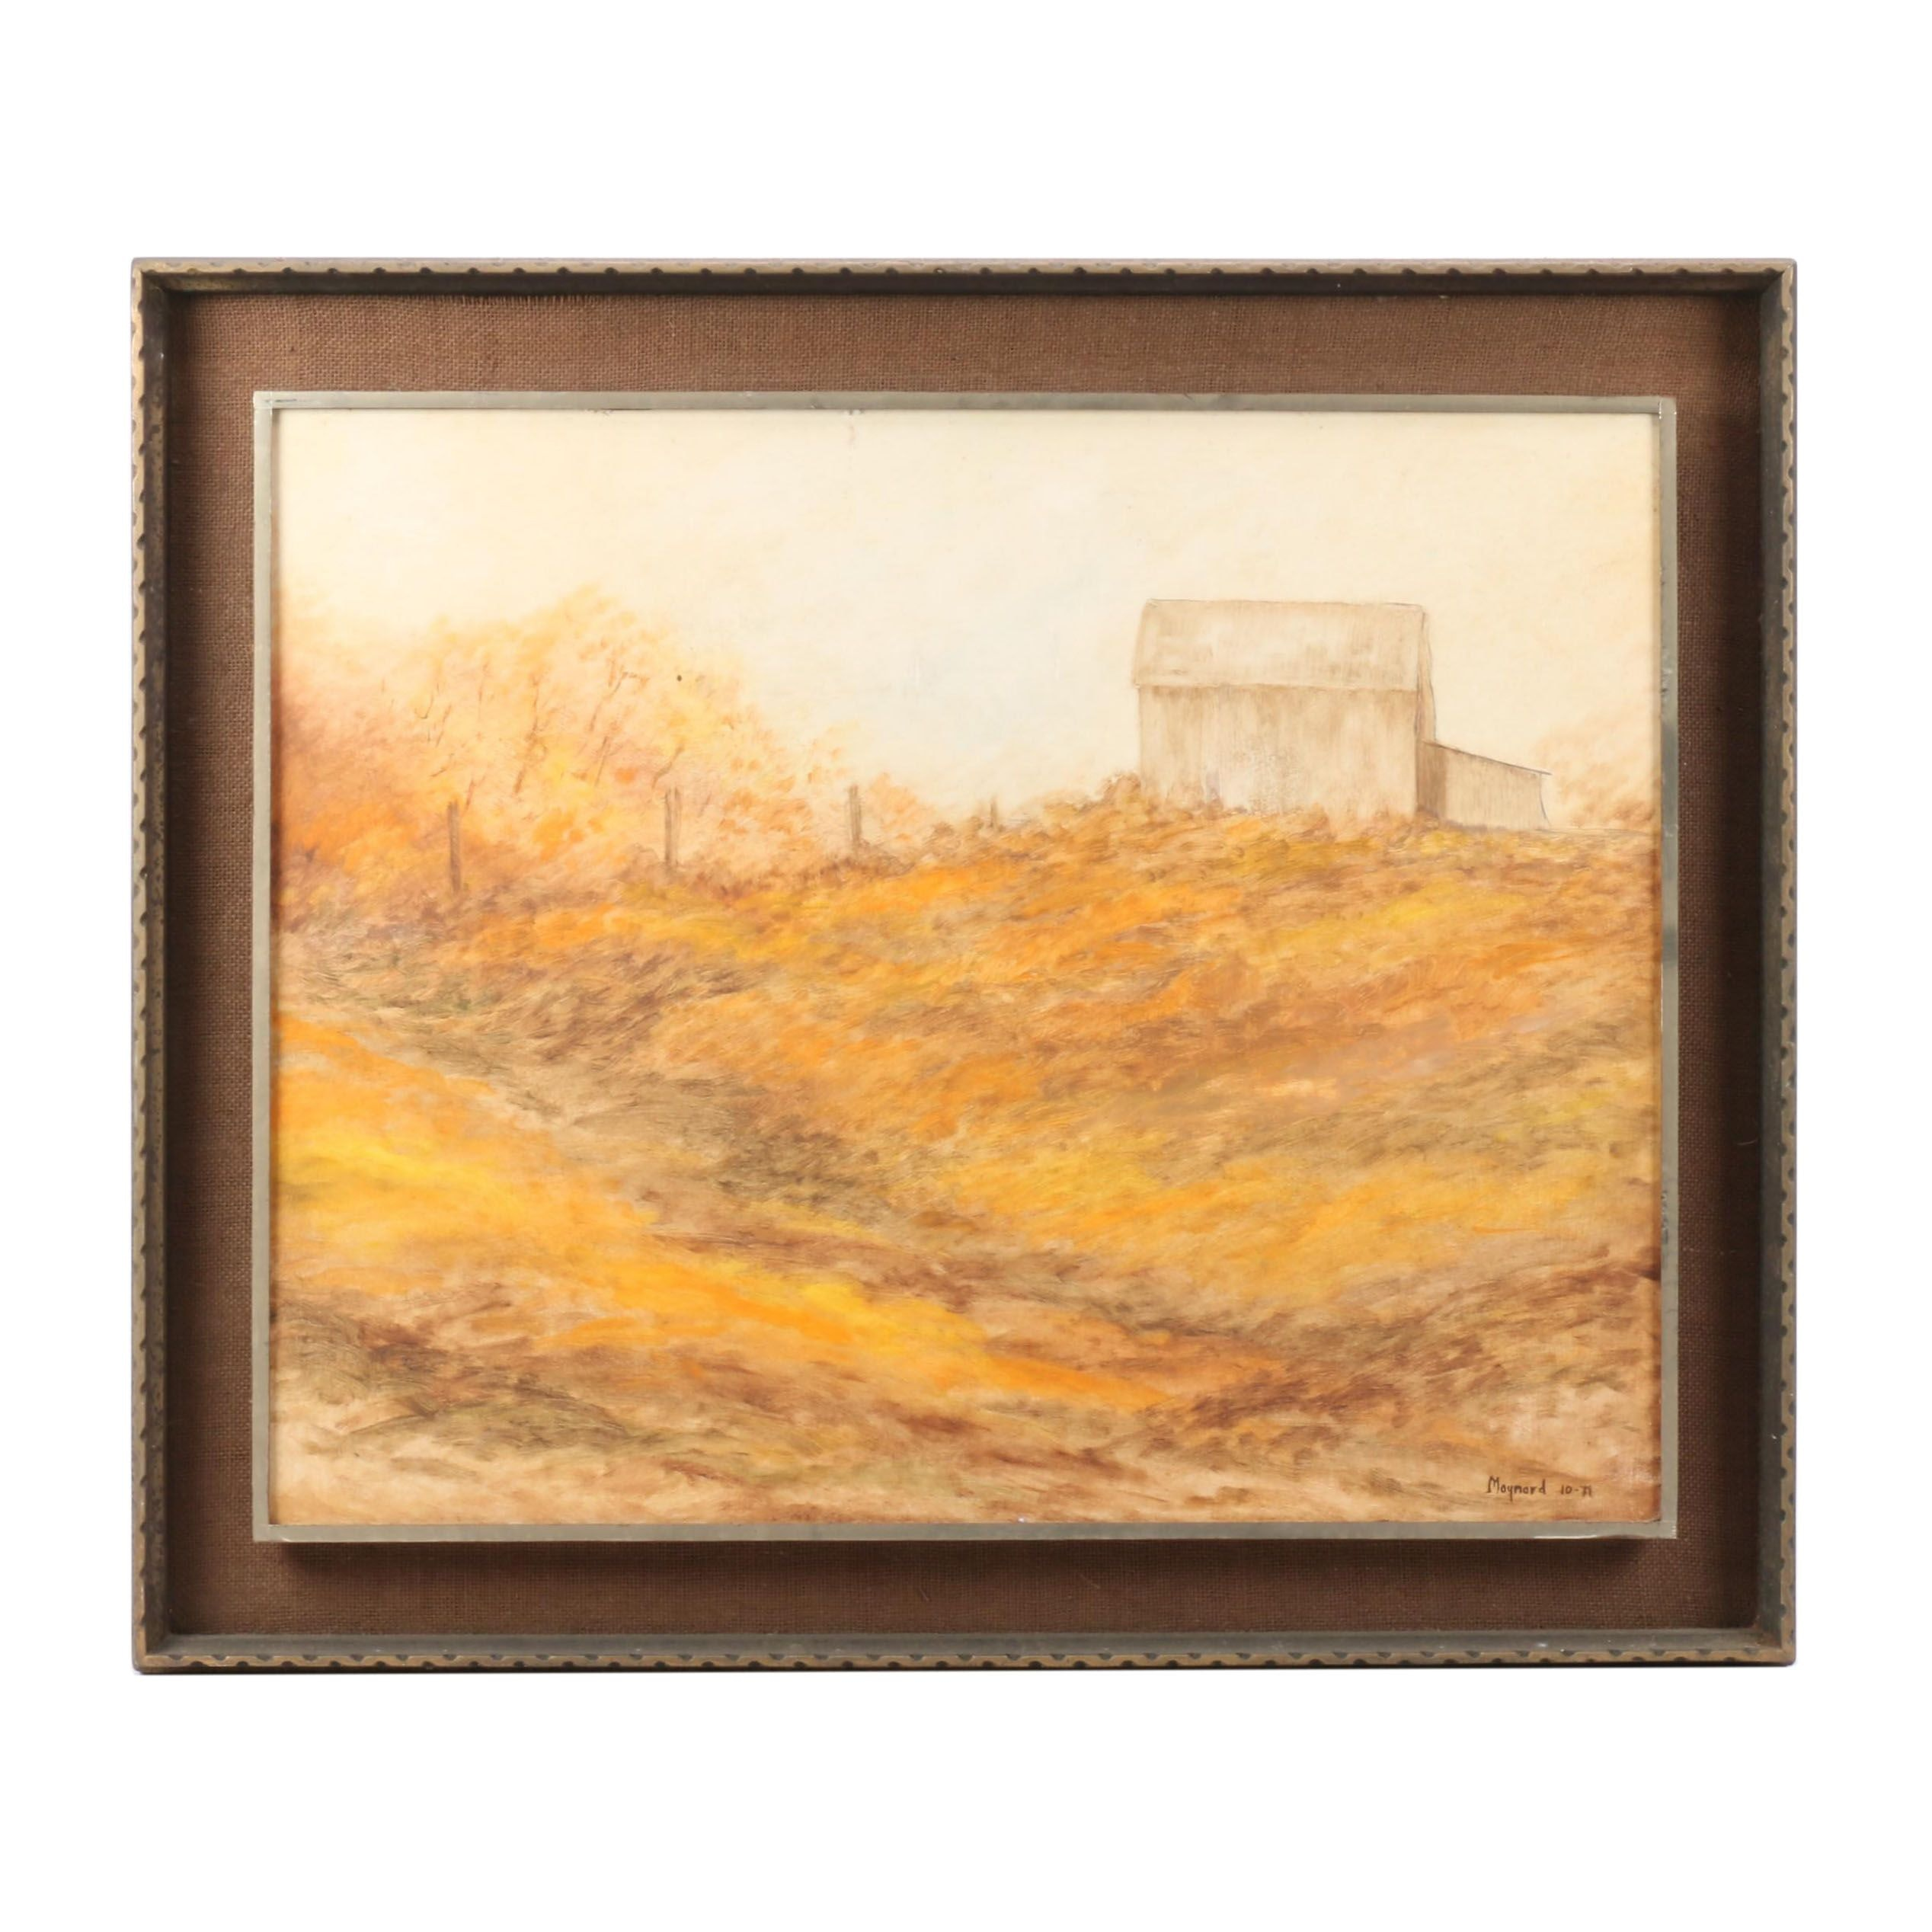 Moynard Oil Painting of House in a Landscape